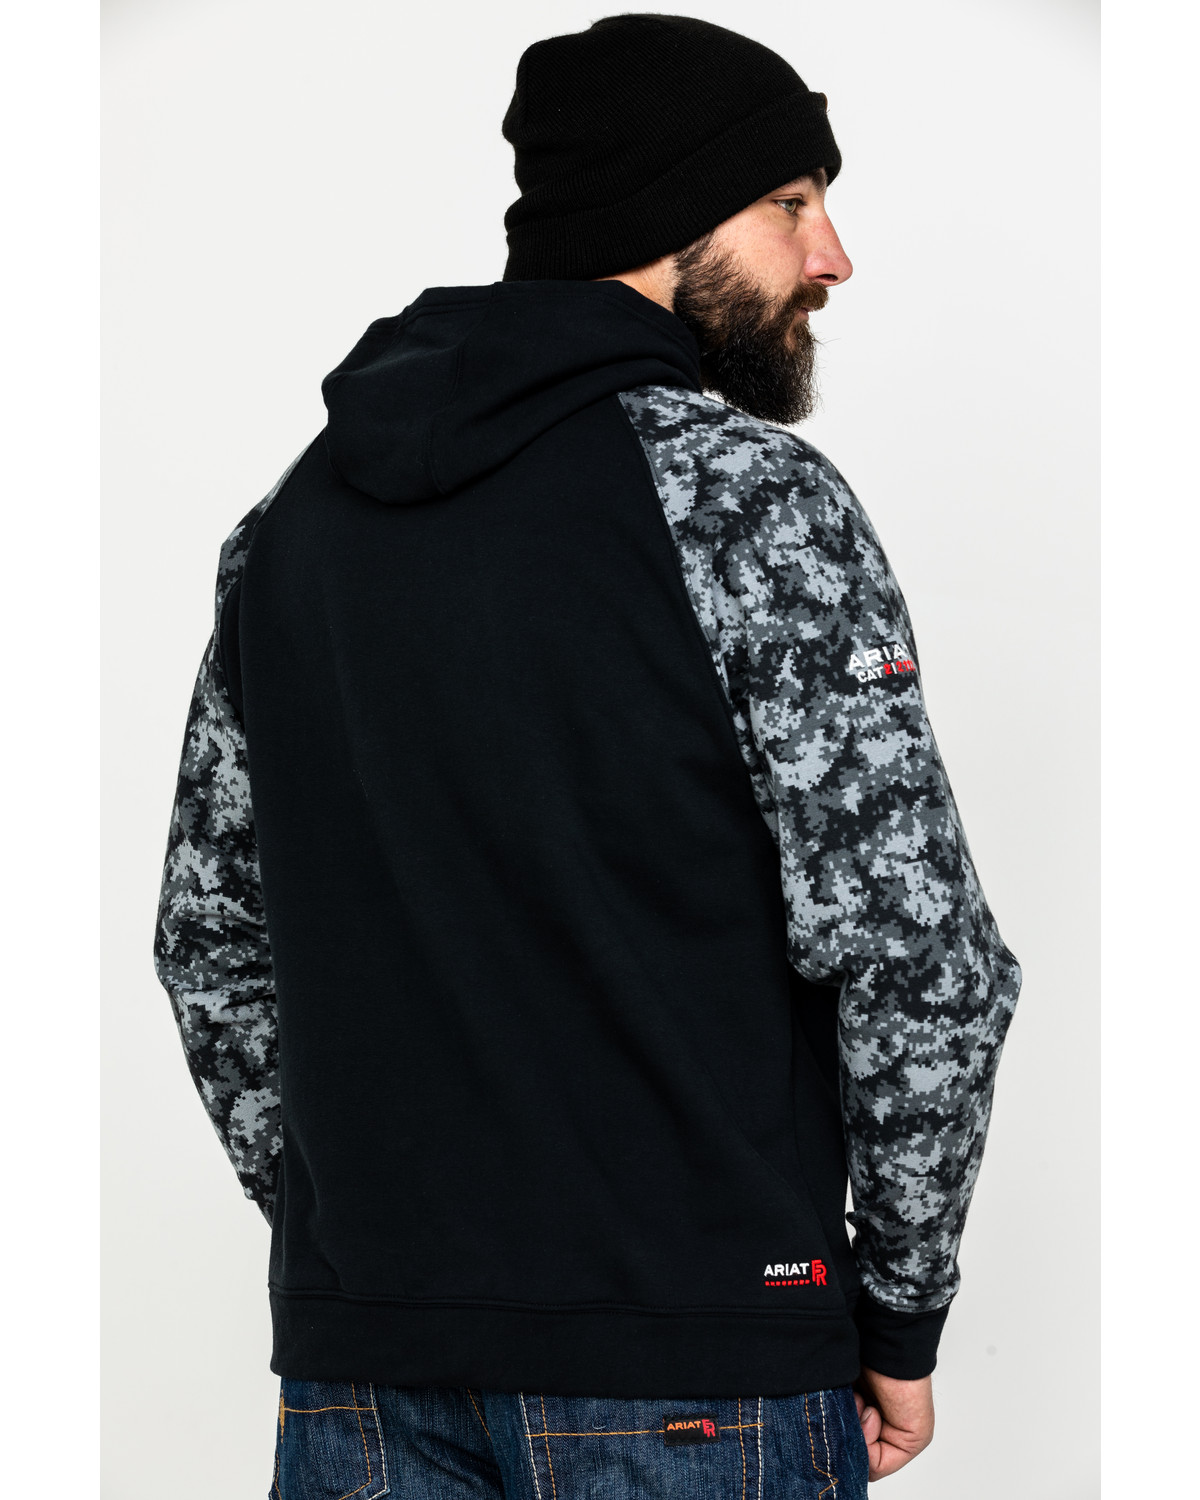 Ariat Men s Black Digi FR Patriot Hoodie - Country Outfitter 0aed1a852